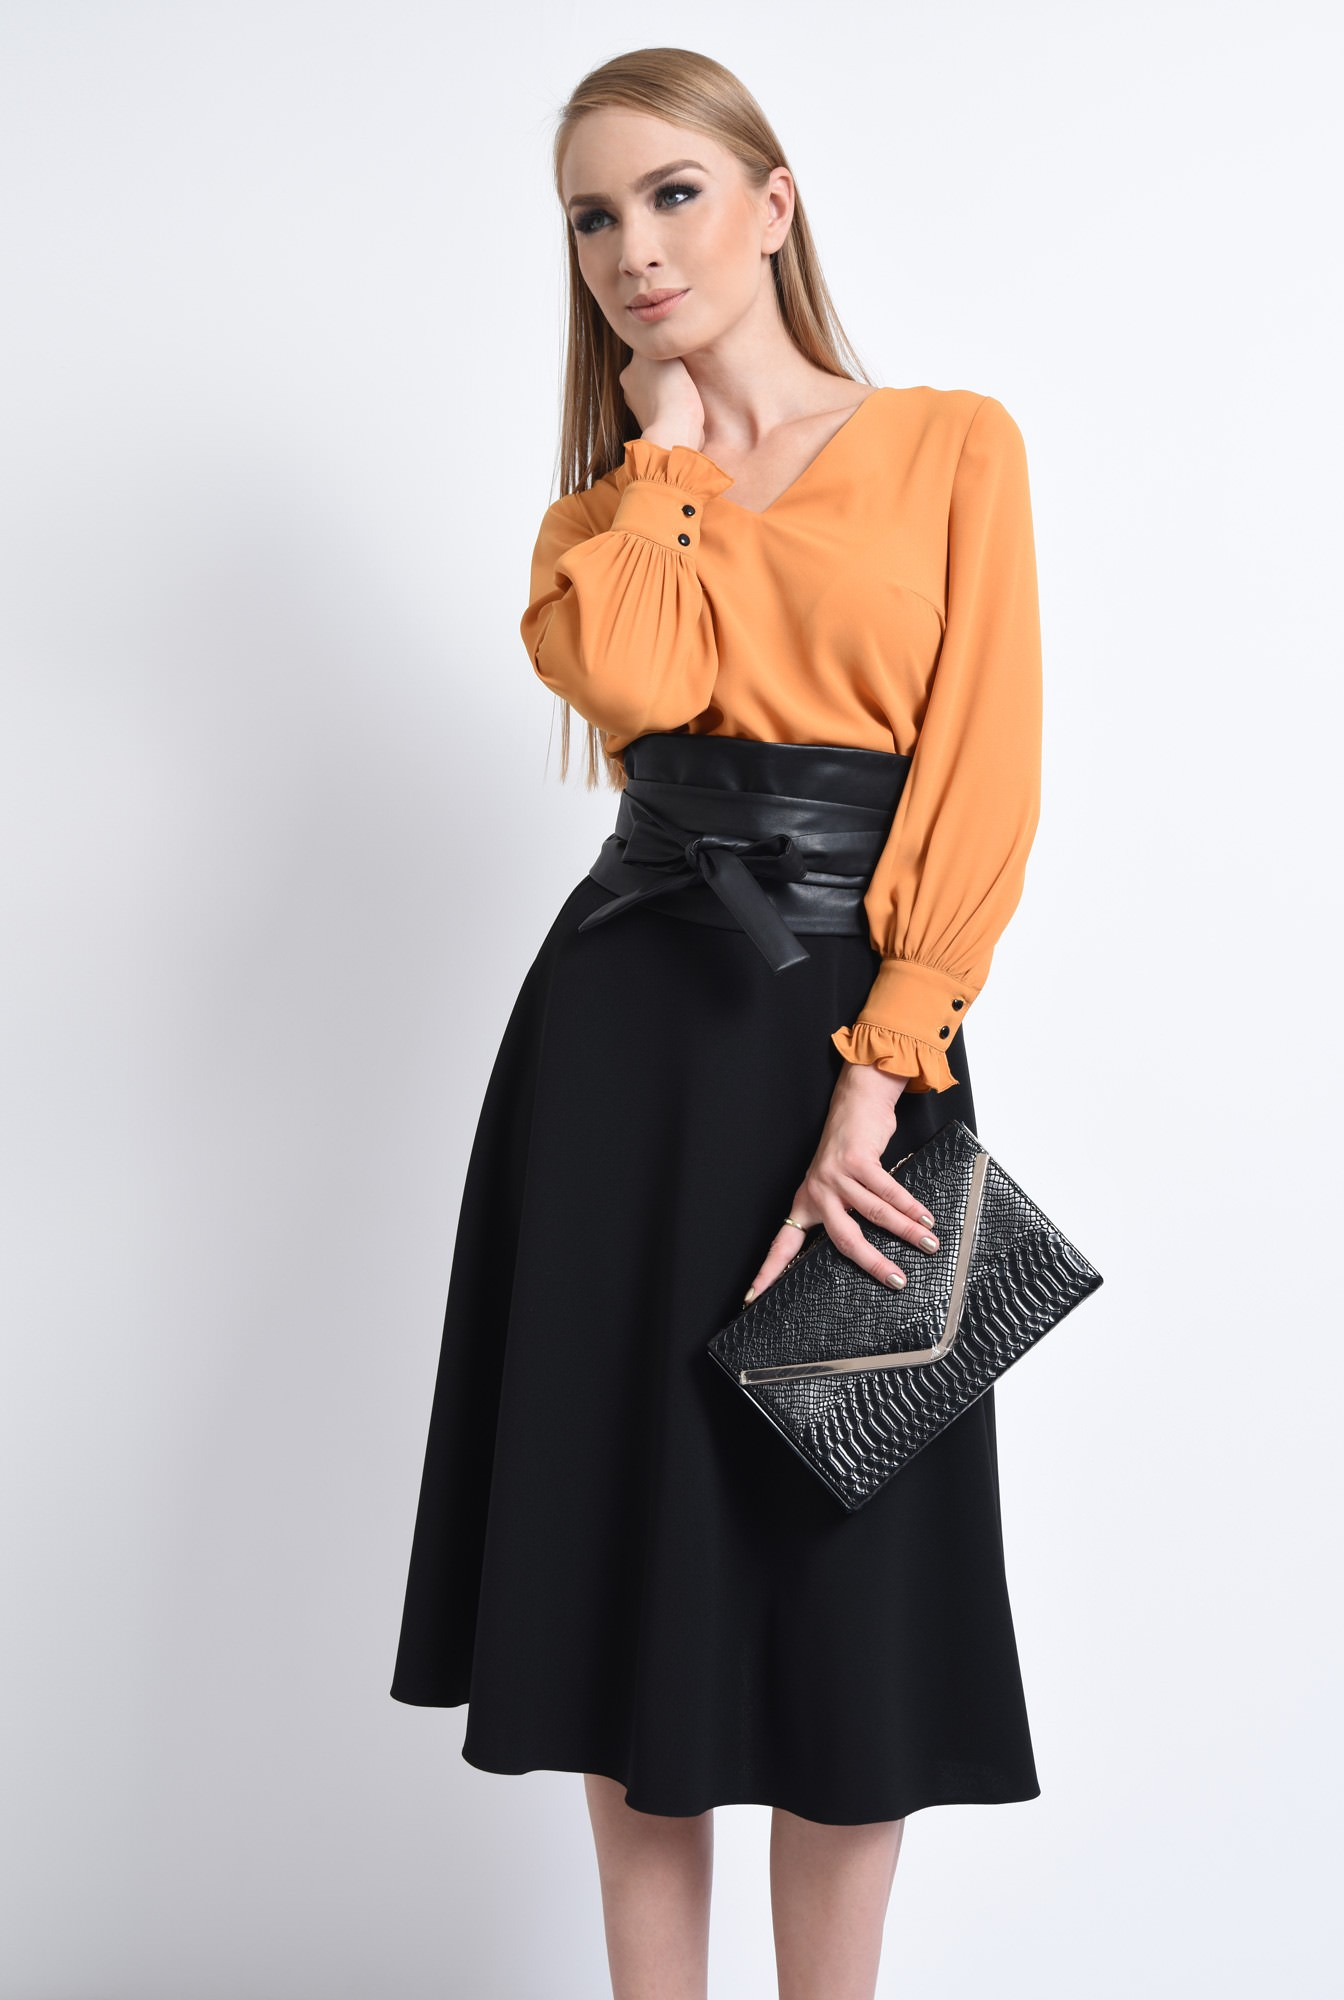 0 - BLUZA OFFICE BL 292-MUSTAR